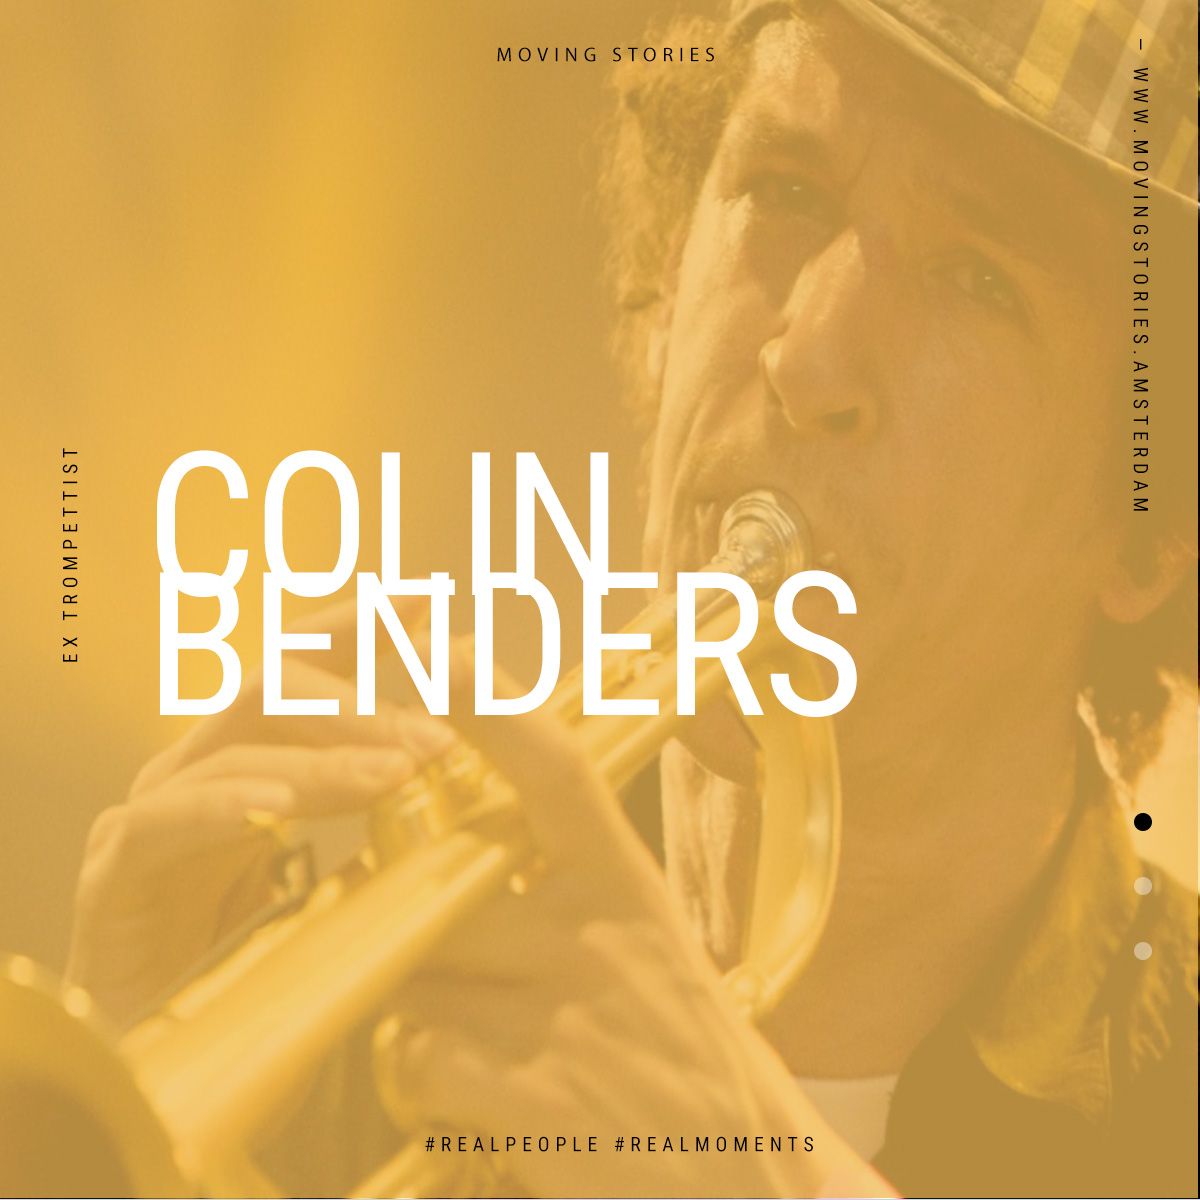 Moving Story - Colin Benders